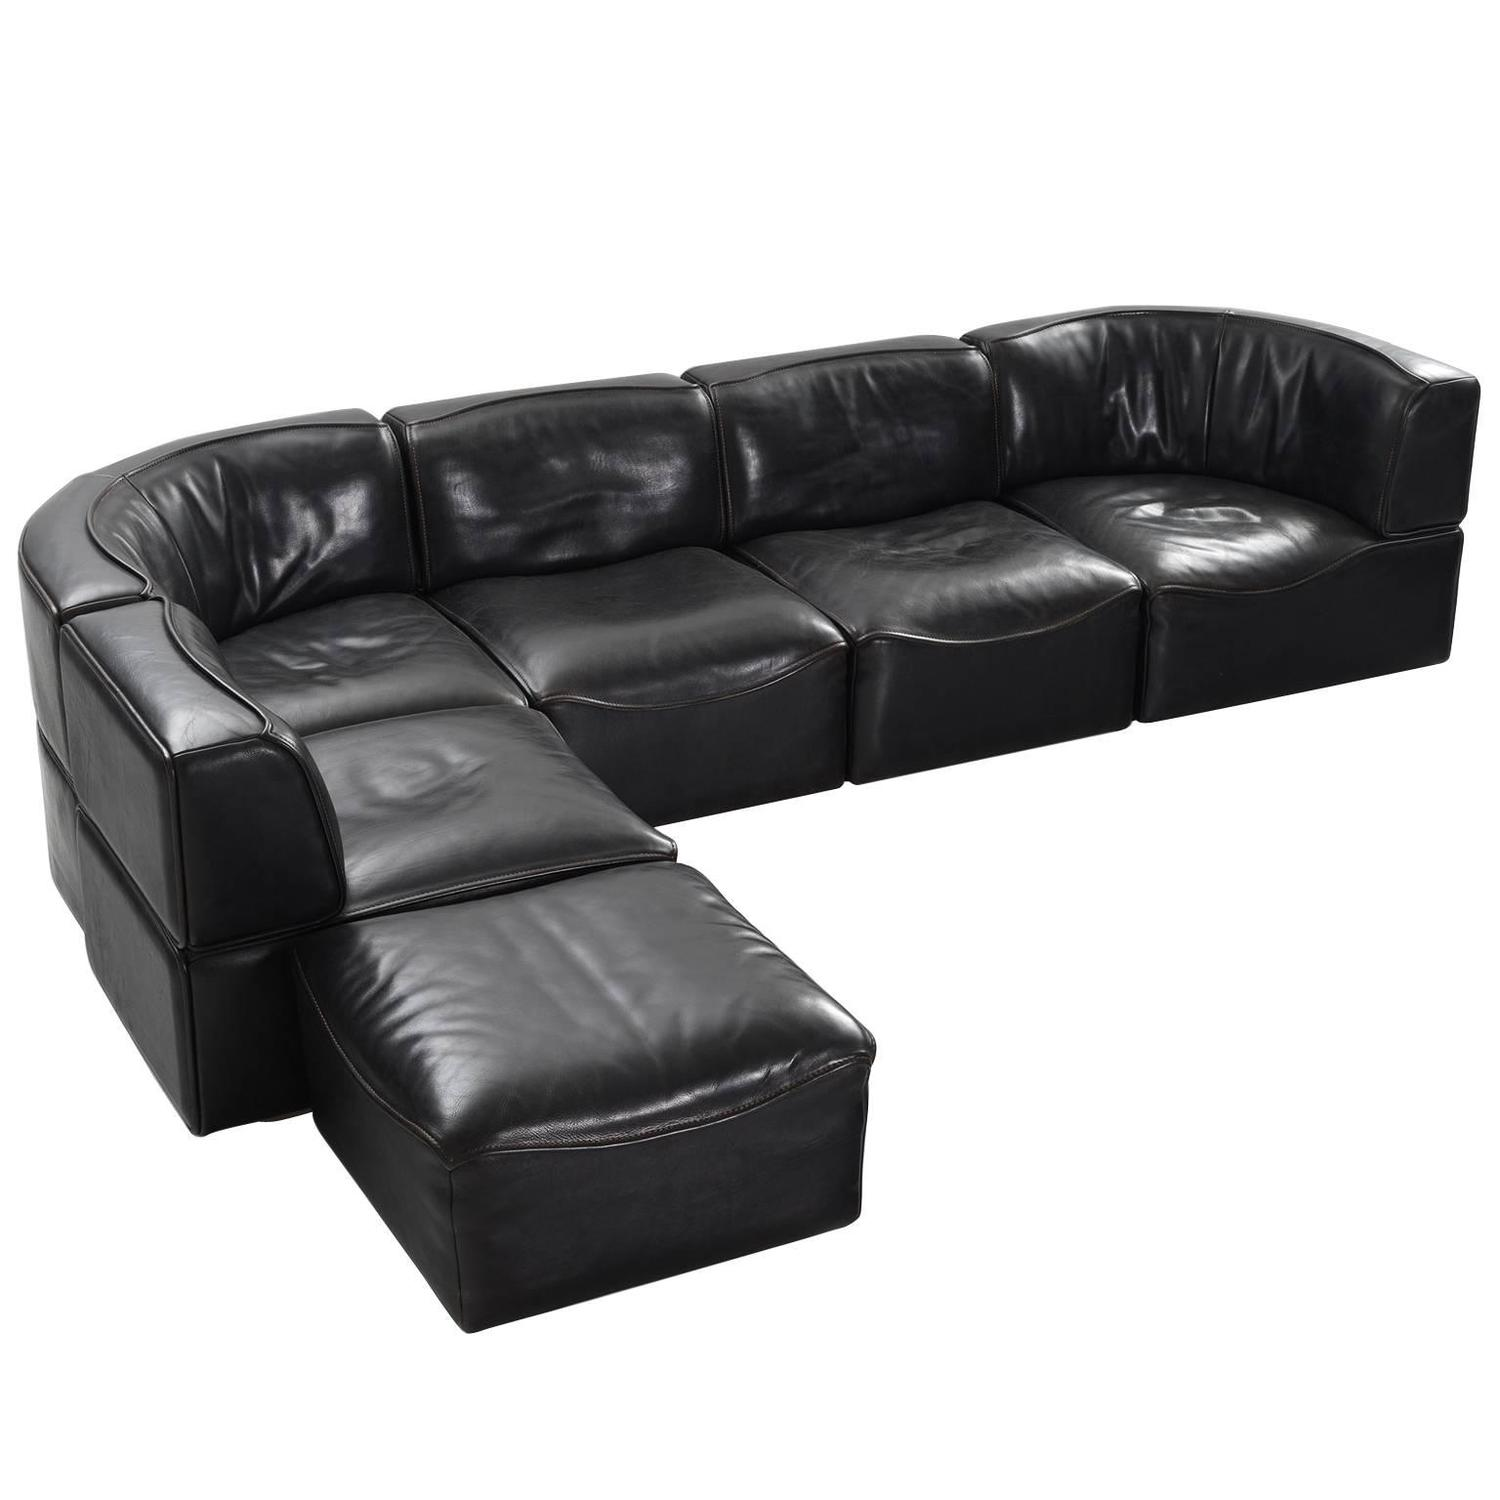 Modular Furniture Sofa: Buffalo Leather Sofa Good Chair Art Designs With Arne